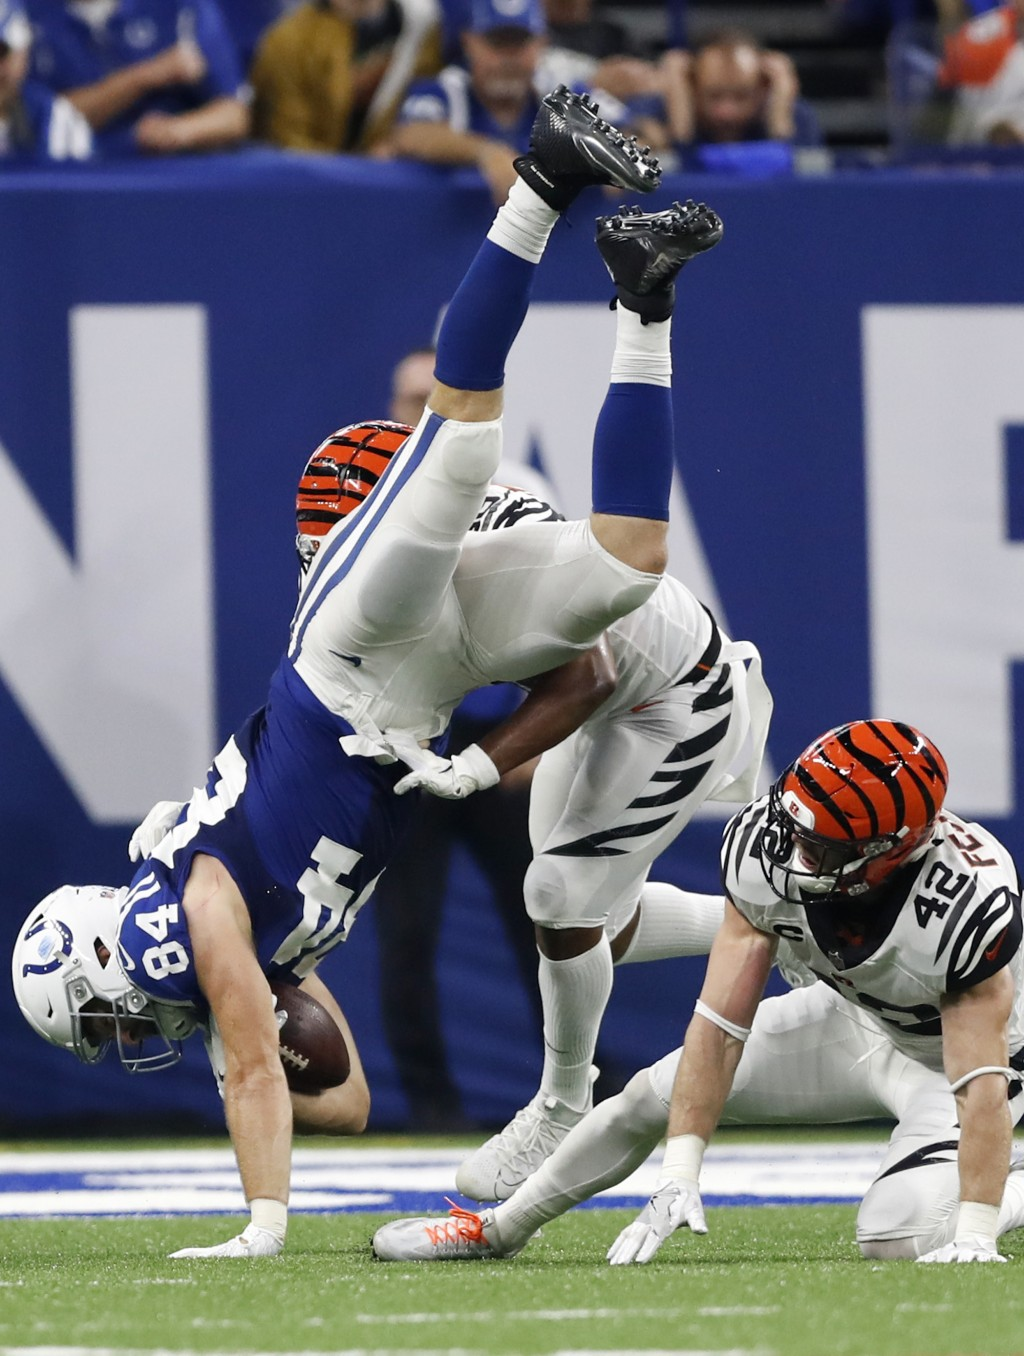 Indianapolis Colts tight end Jack Doyle (84) flips as he is hit by Cincinnati Bengals safety Clayton Fejedelem (42) and linebacker Hardy Nickerson dur